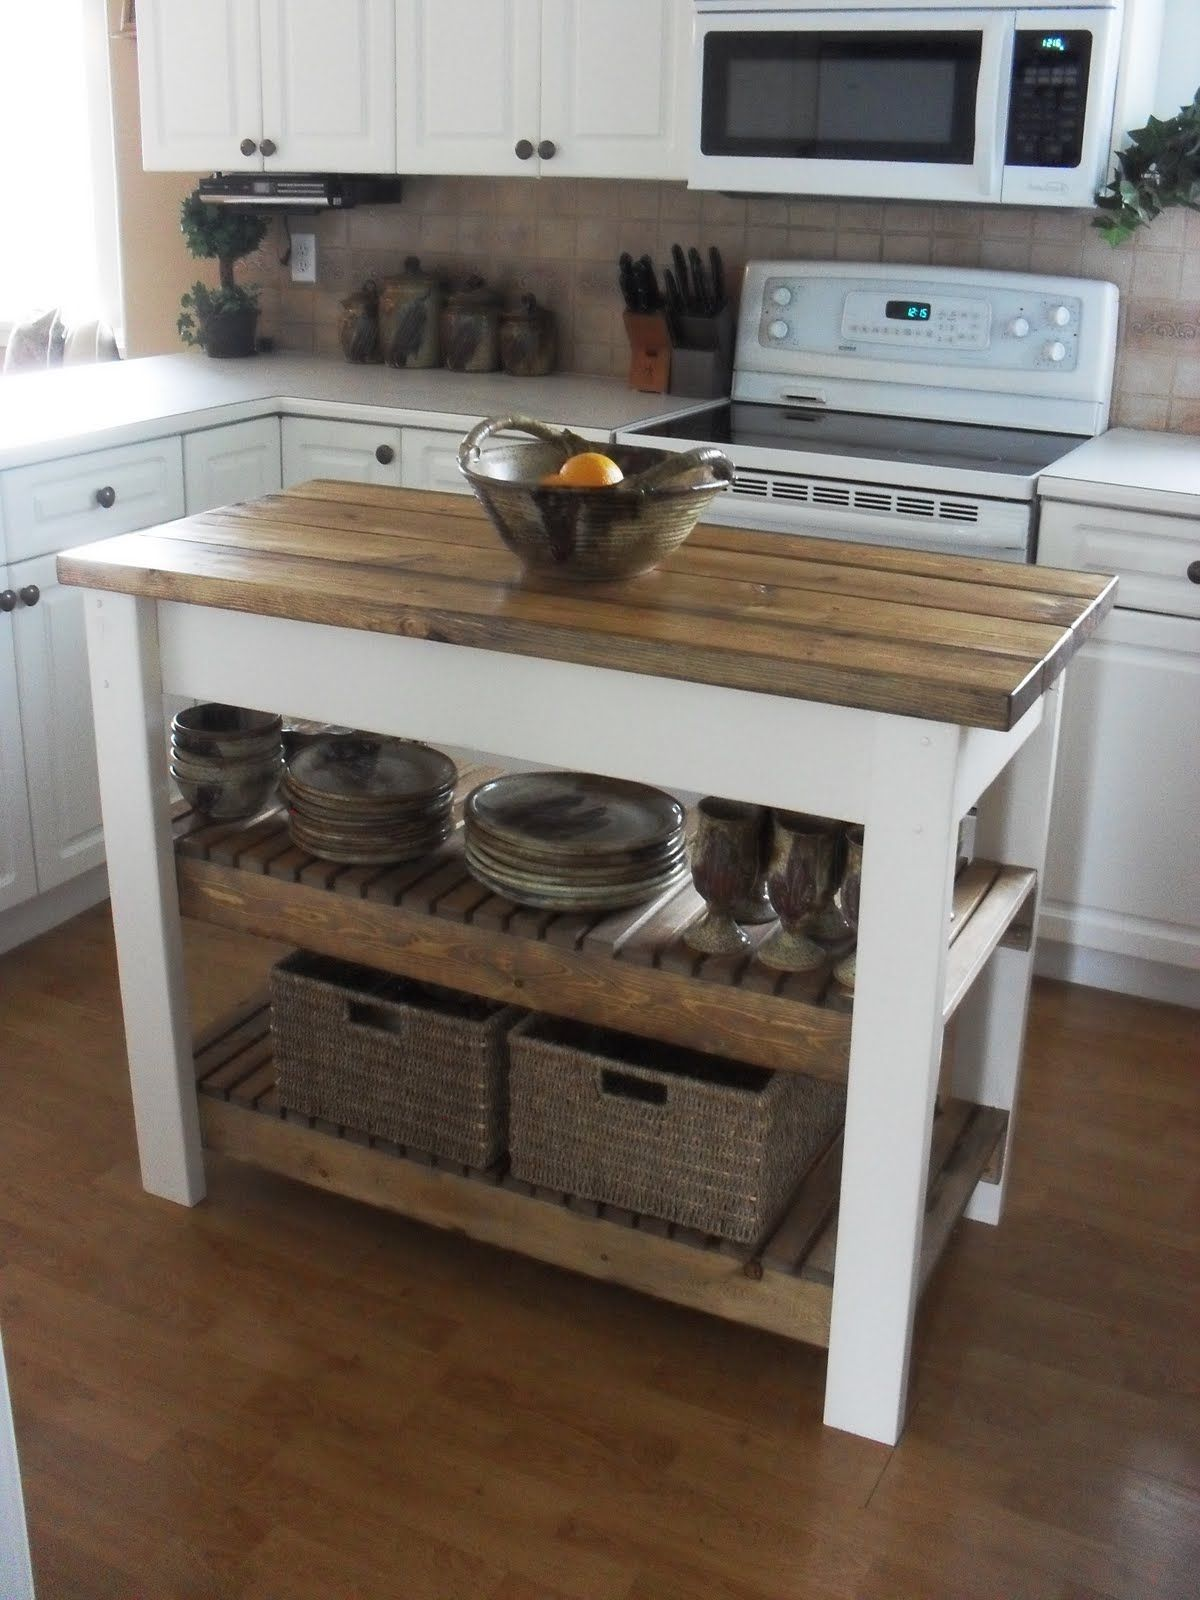 15 do it yourself hacks and clever ideas to upgrade your for Kitchen ideas no island